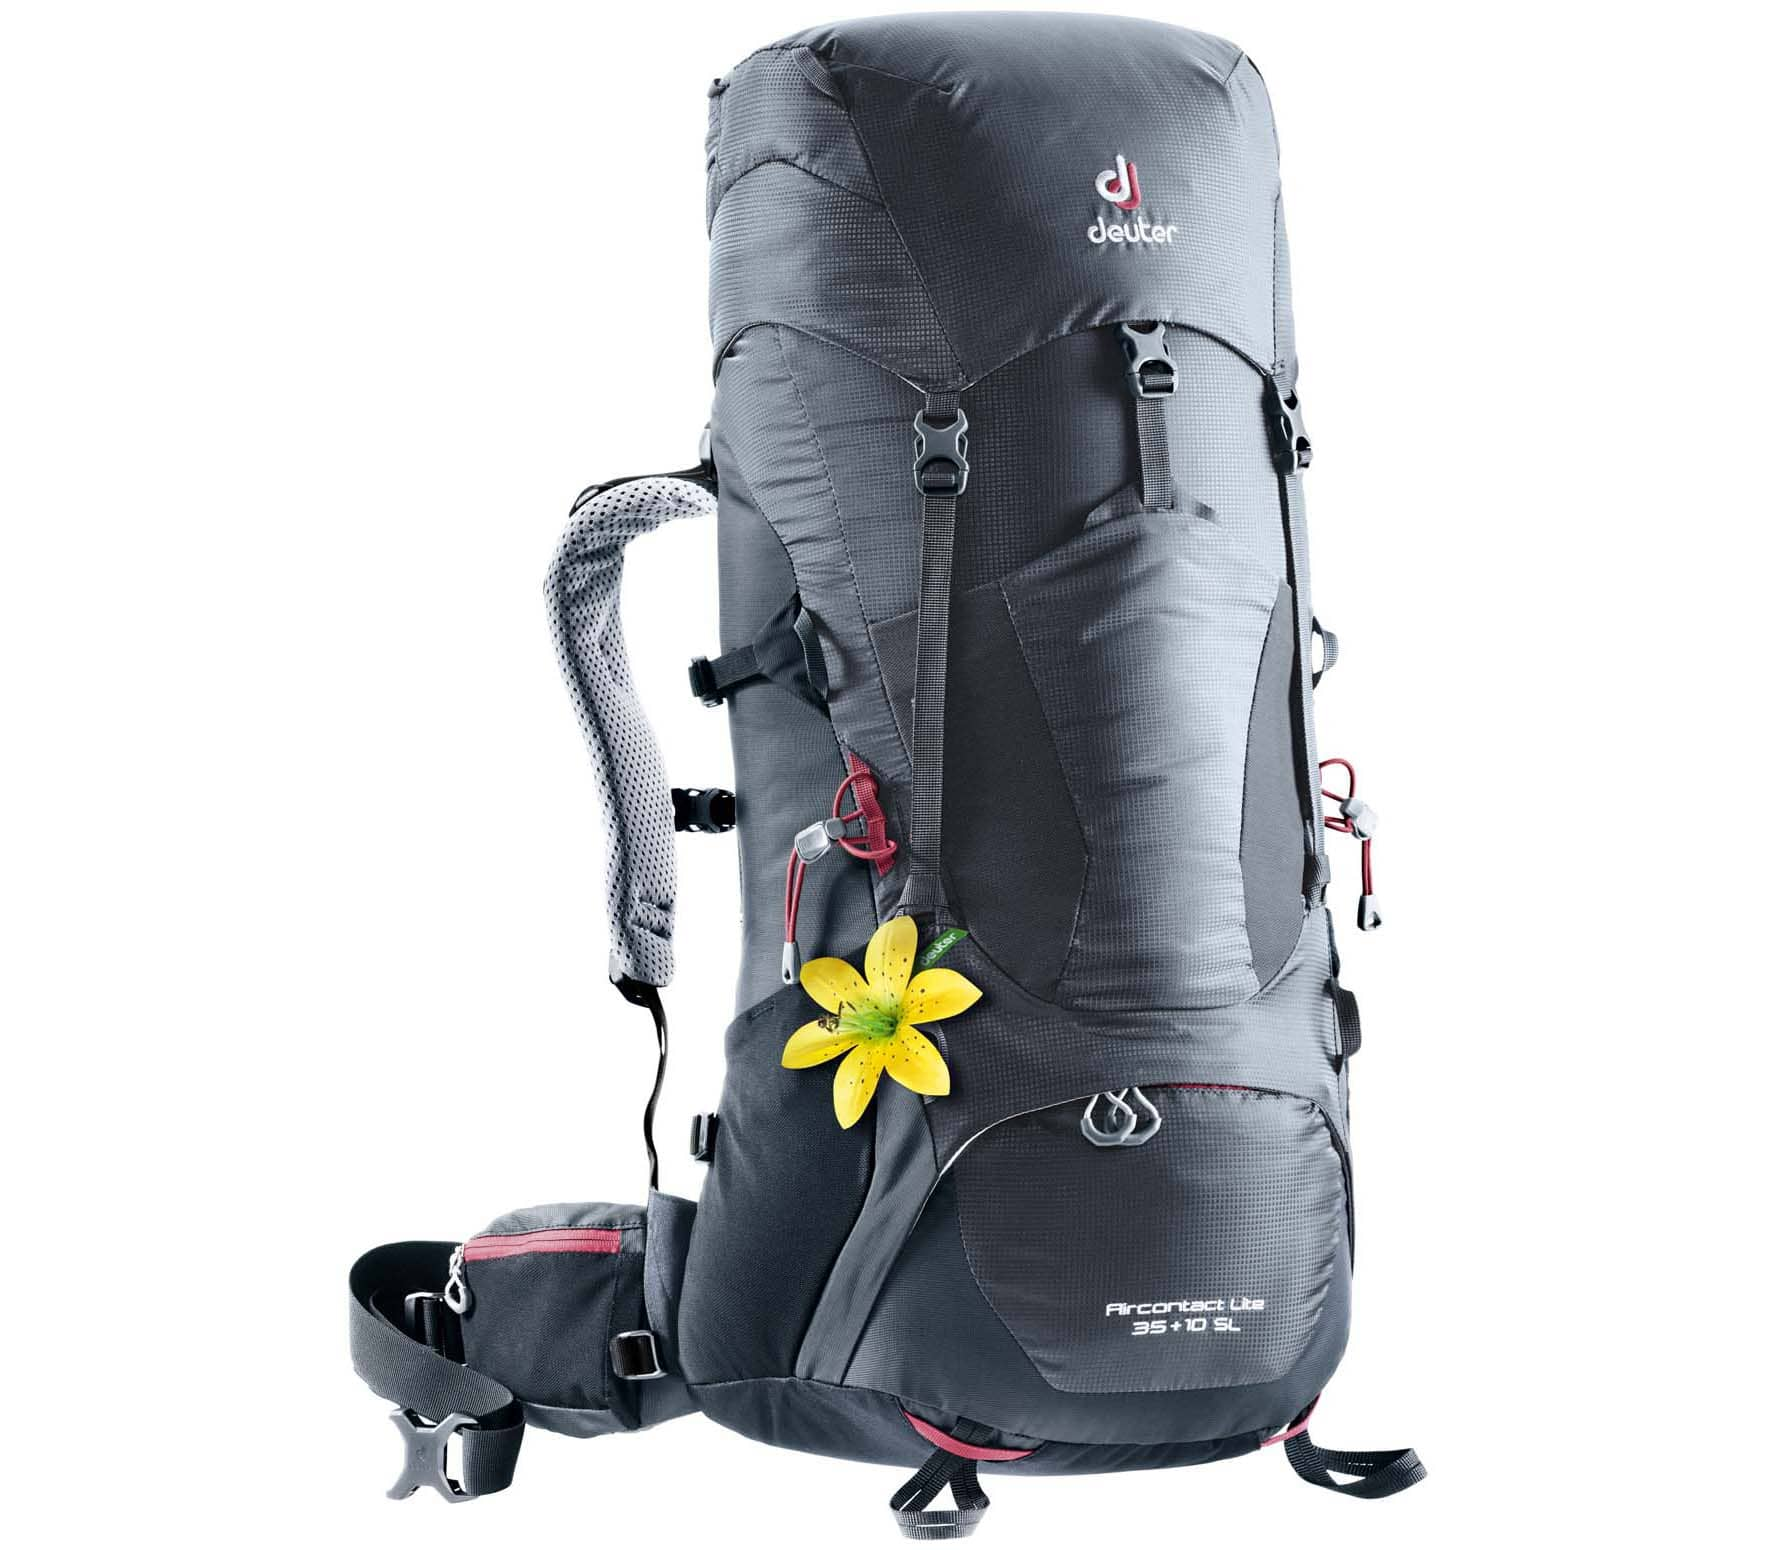 Deuter - Aircontact Lite 35 + 10 hiking backpack (grey)